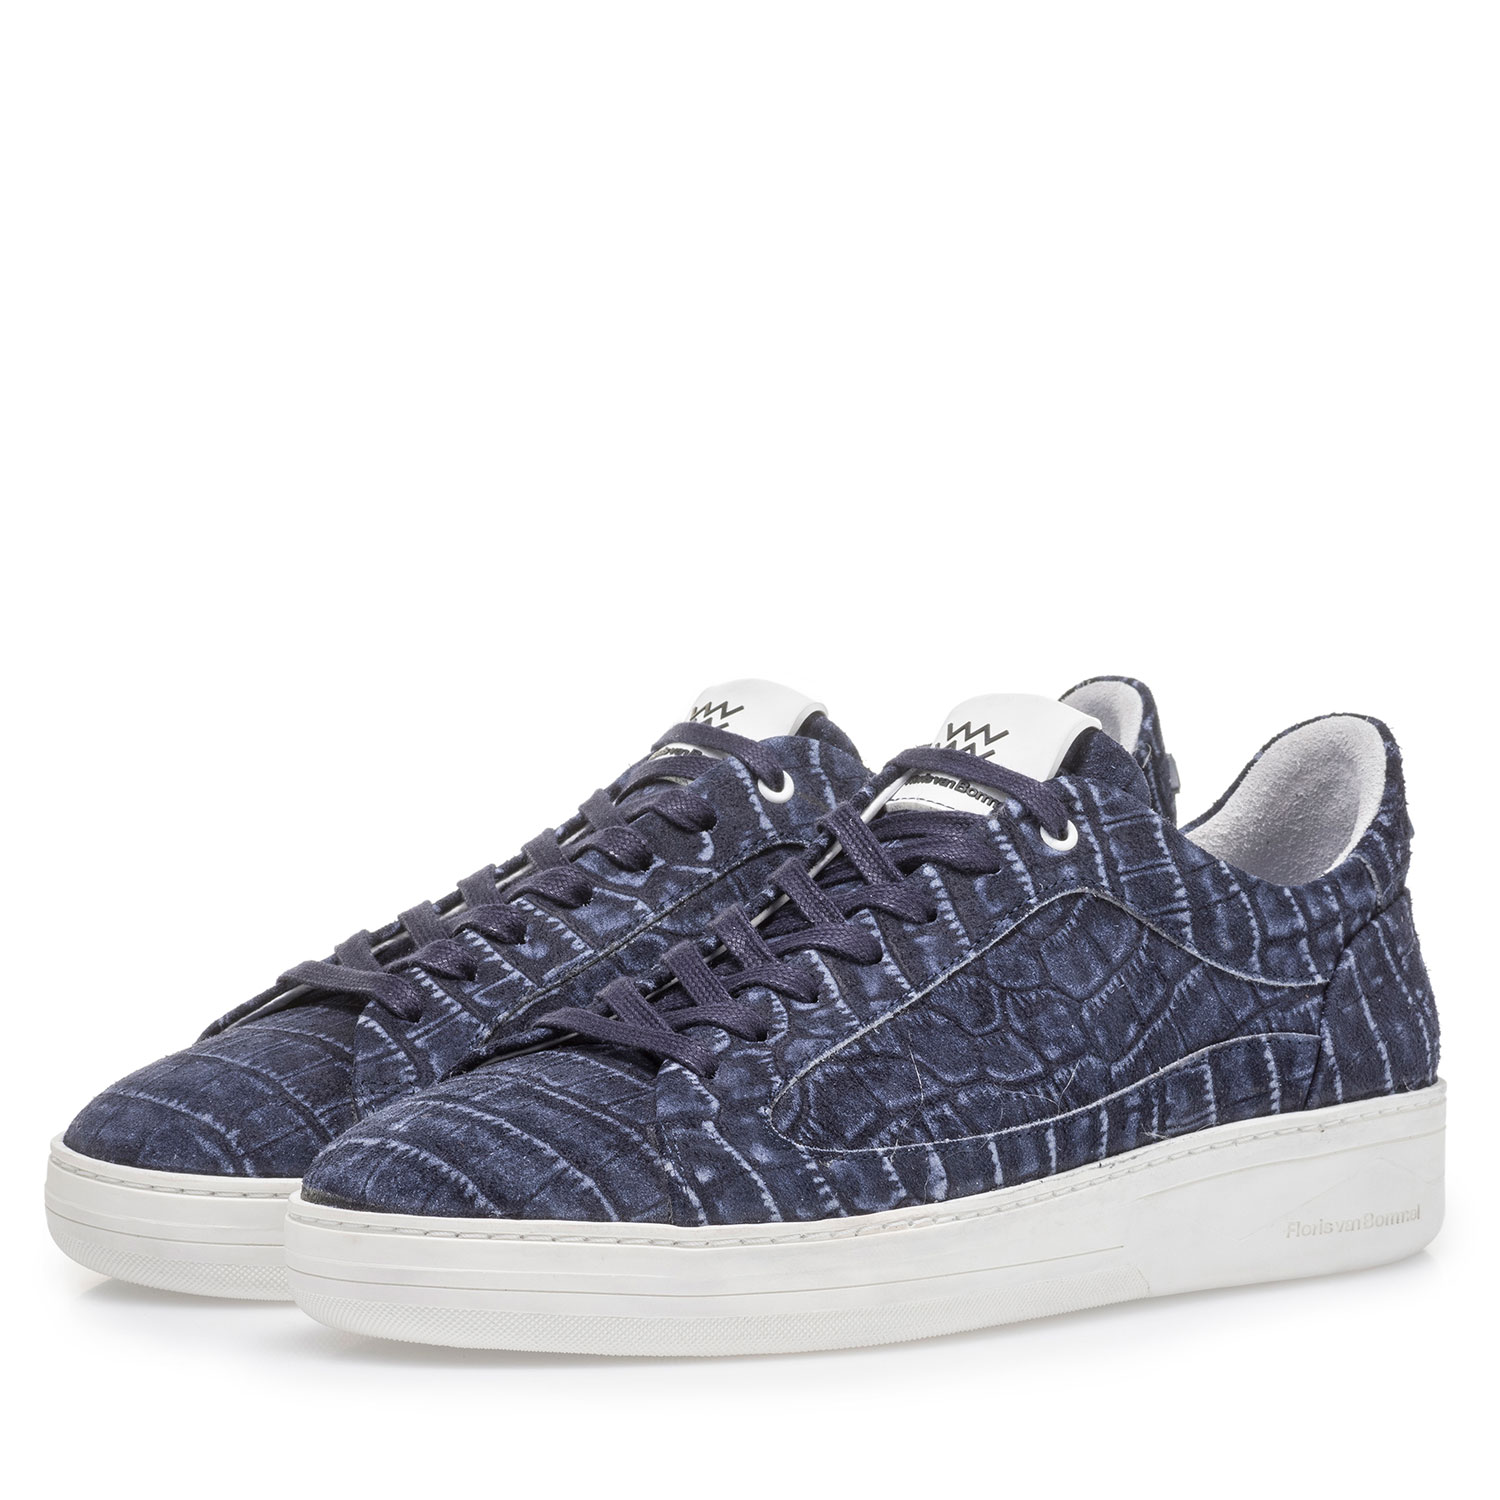 13265/07 - Dark blue sneaker with croco print